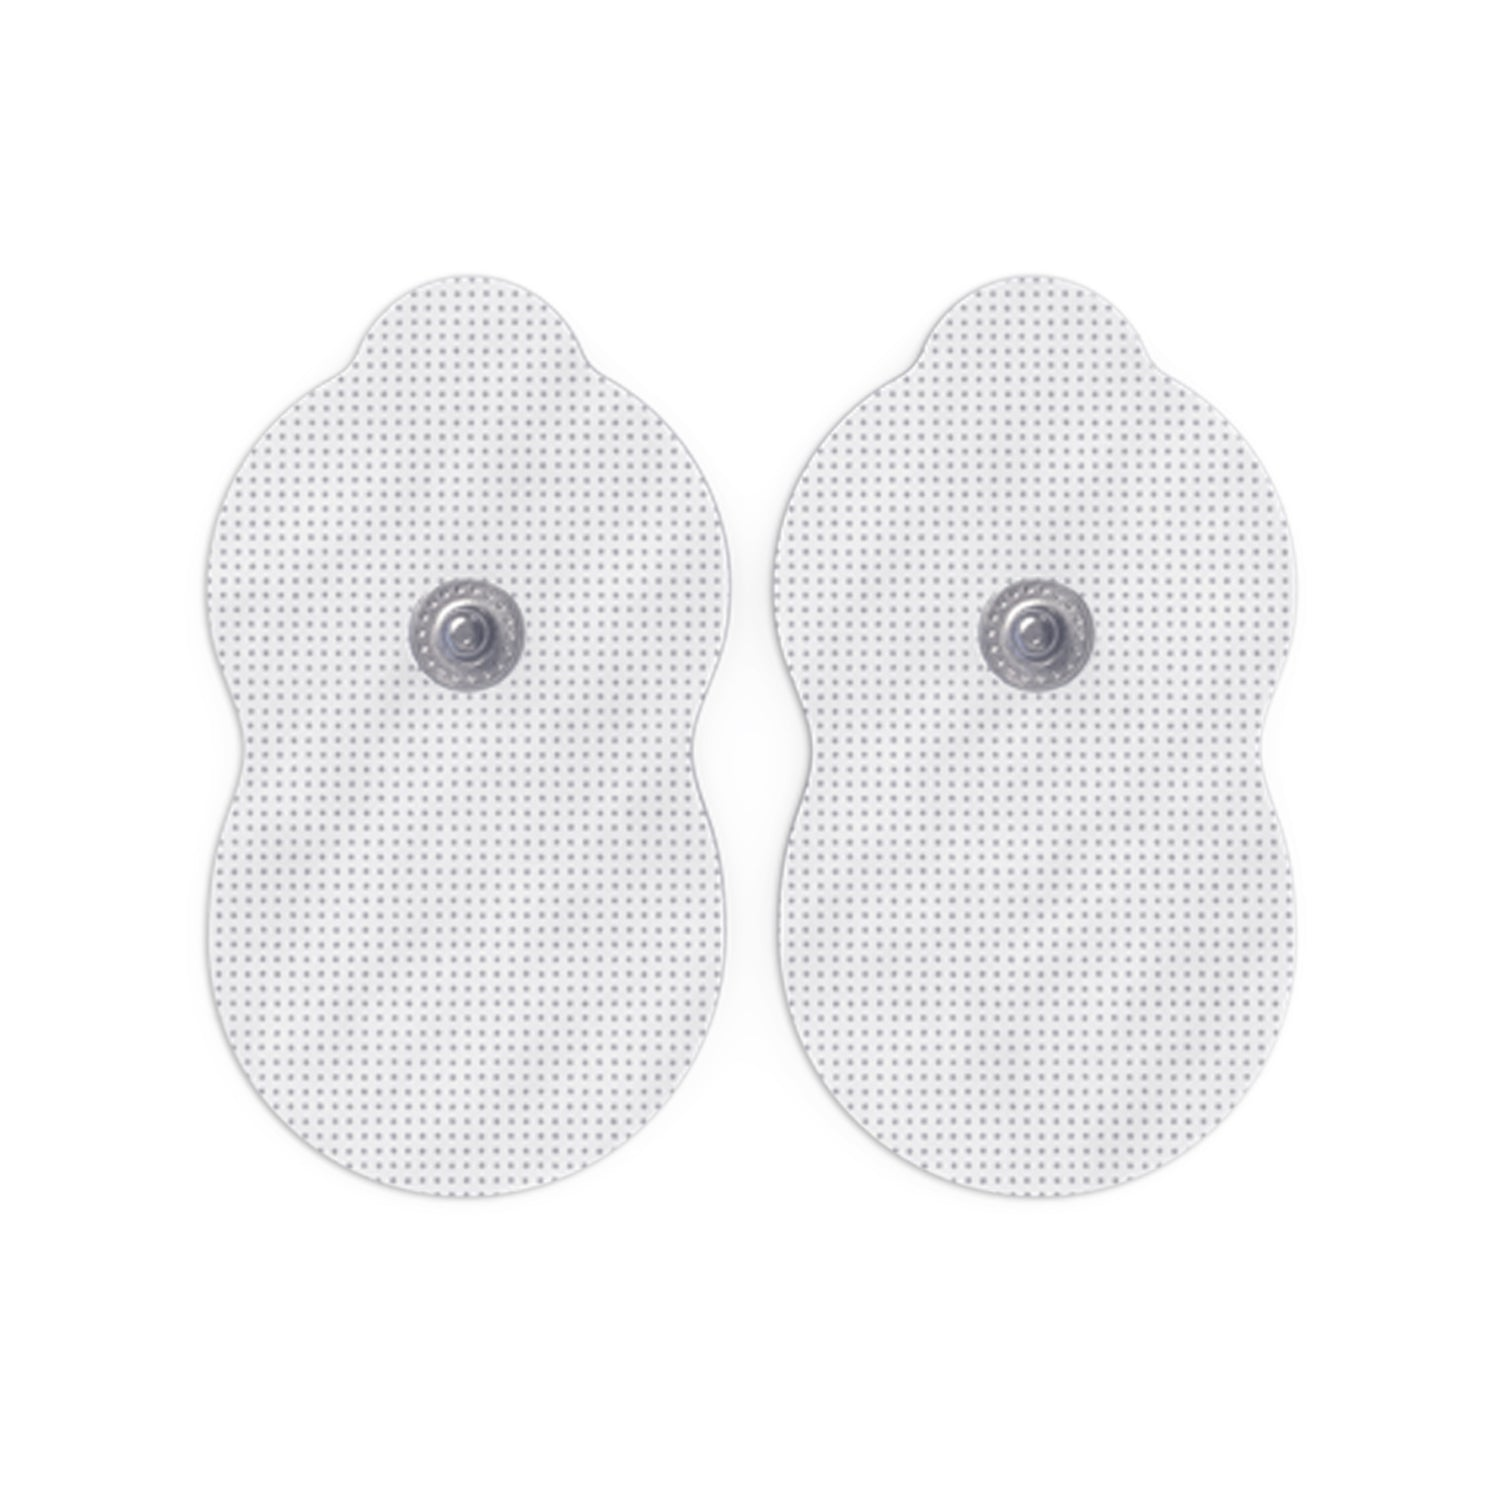 5 Pairs (10 Pcs) White Pair of Snap-On Large Gourd-Shaped Electrode Patches Pads - HealthmateForever